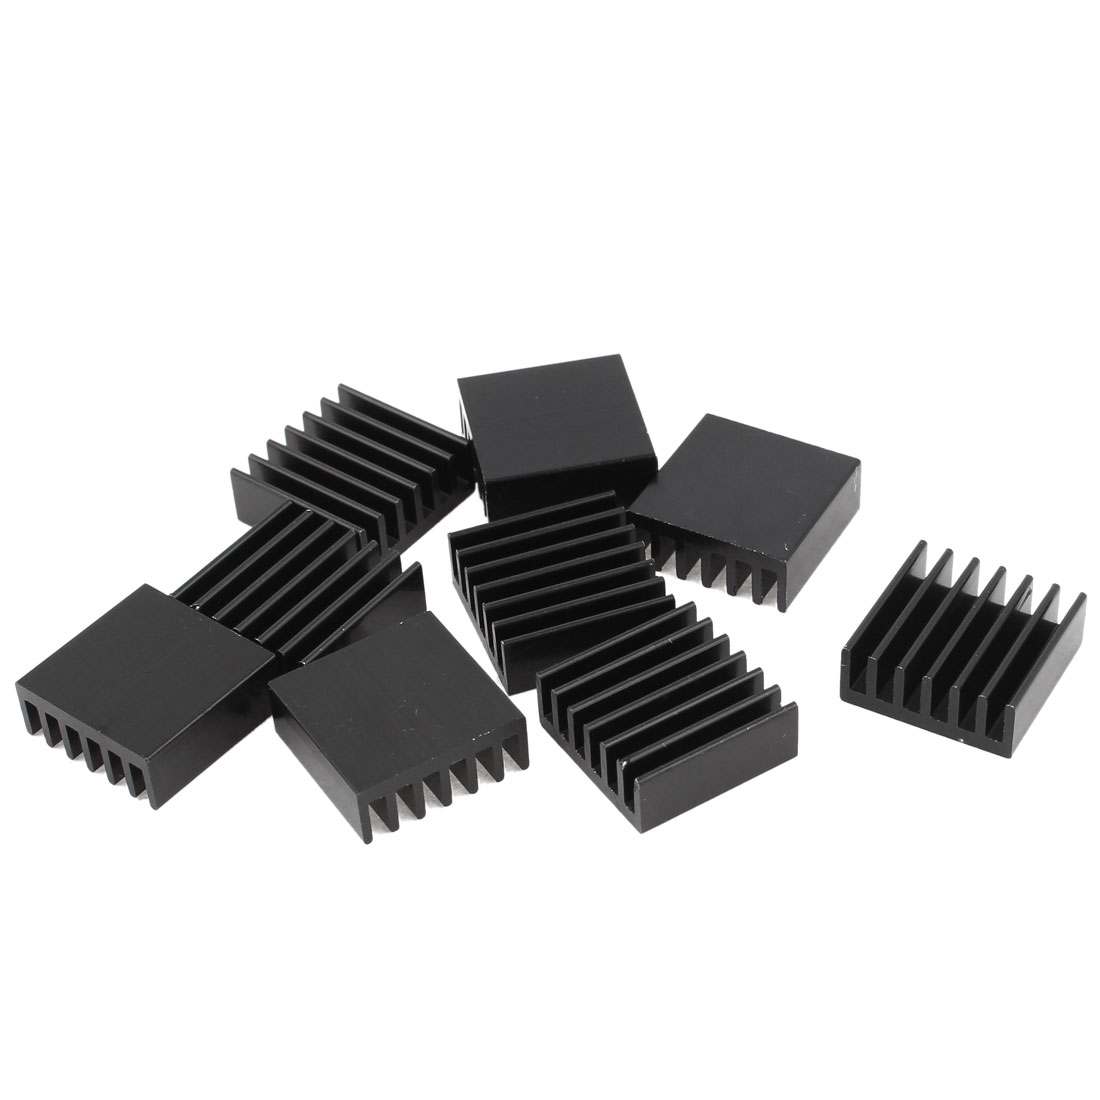 10 Pcs Black Aluminum Radiator Heat Sink Heatsink 14mm x 14mm x 6mm